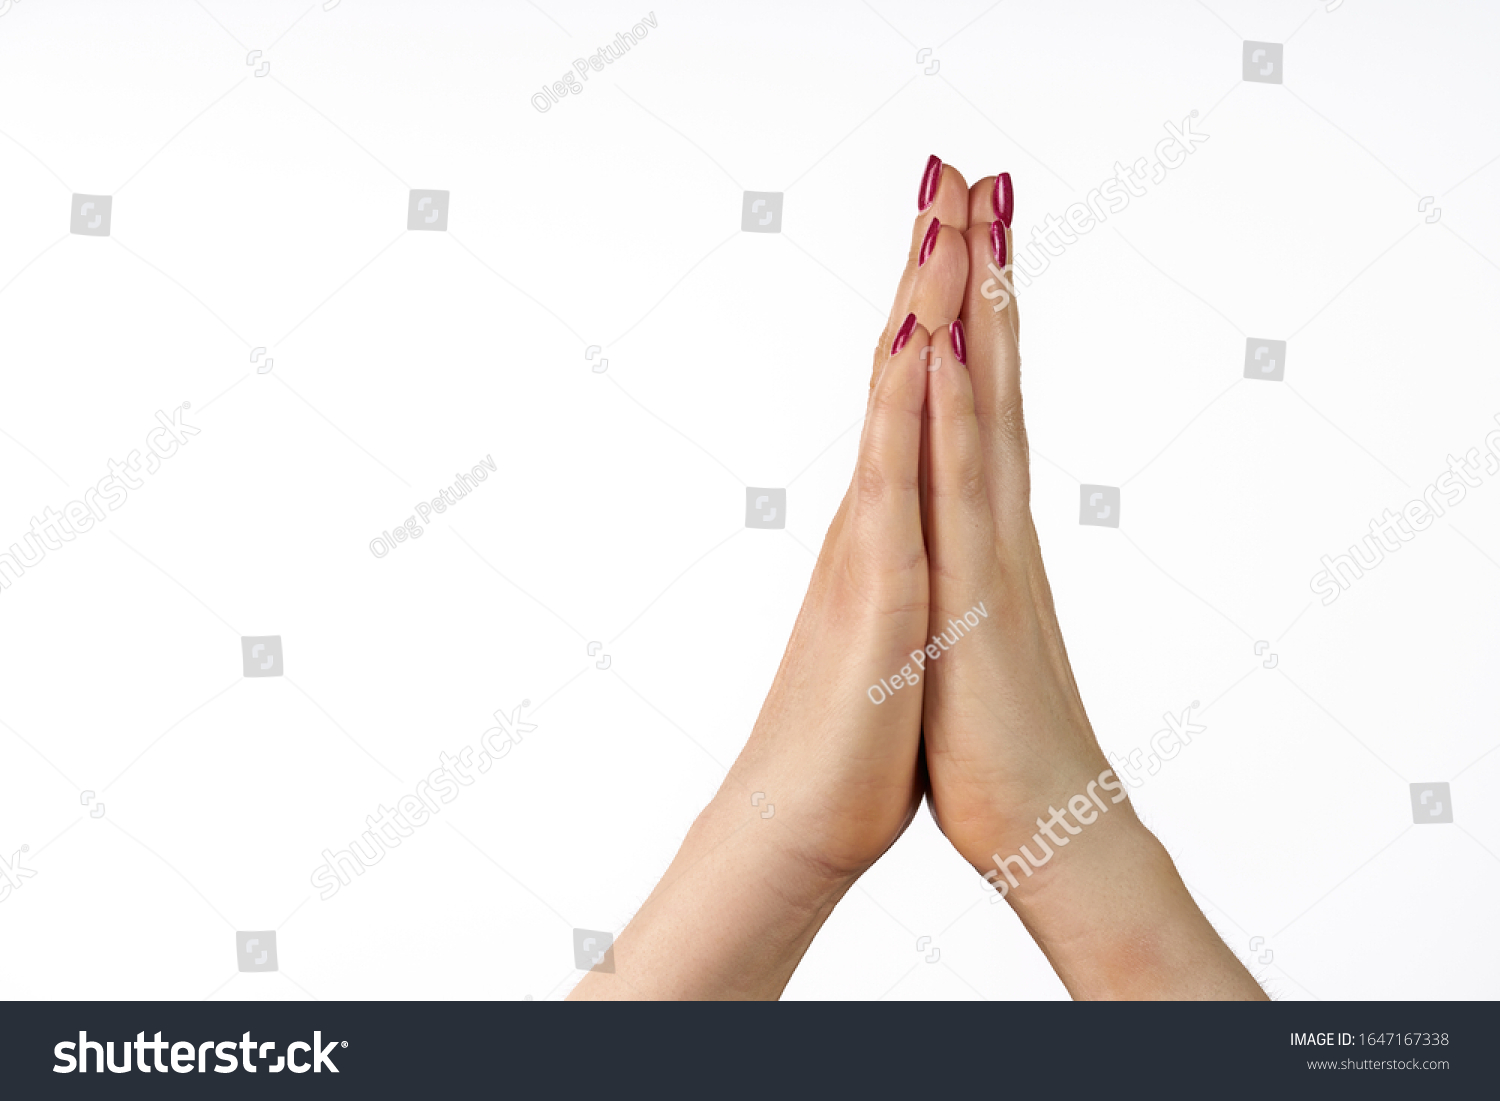 praying hands isolated on white background #1647167338